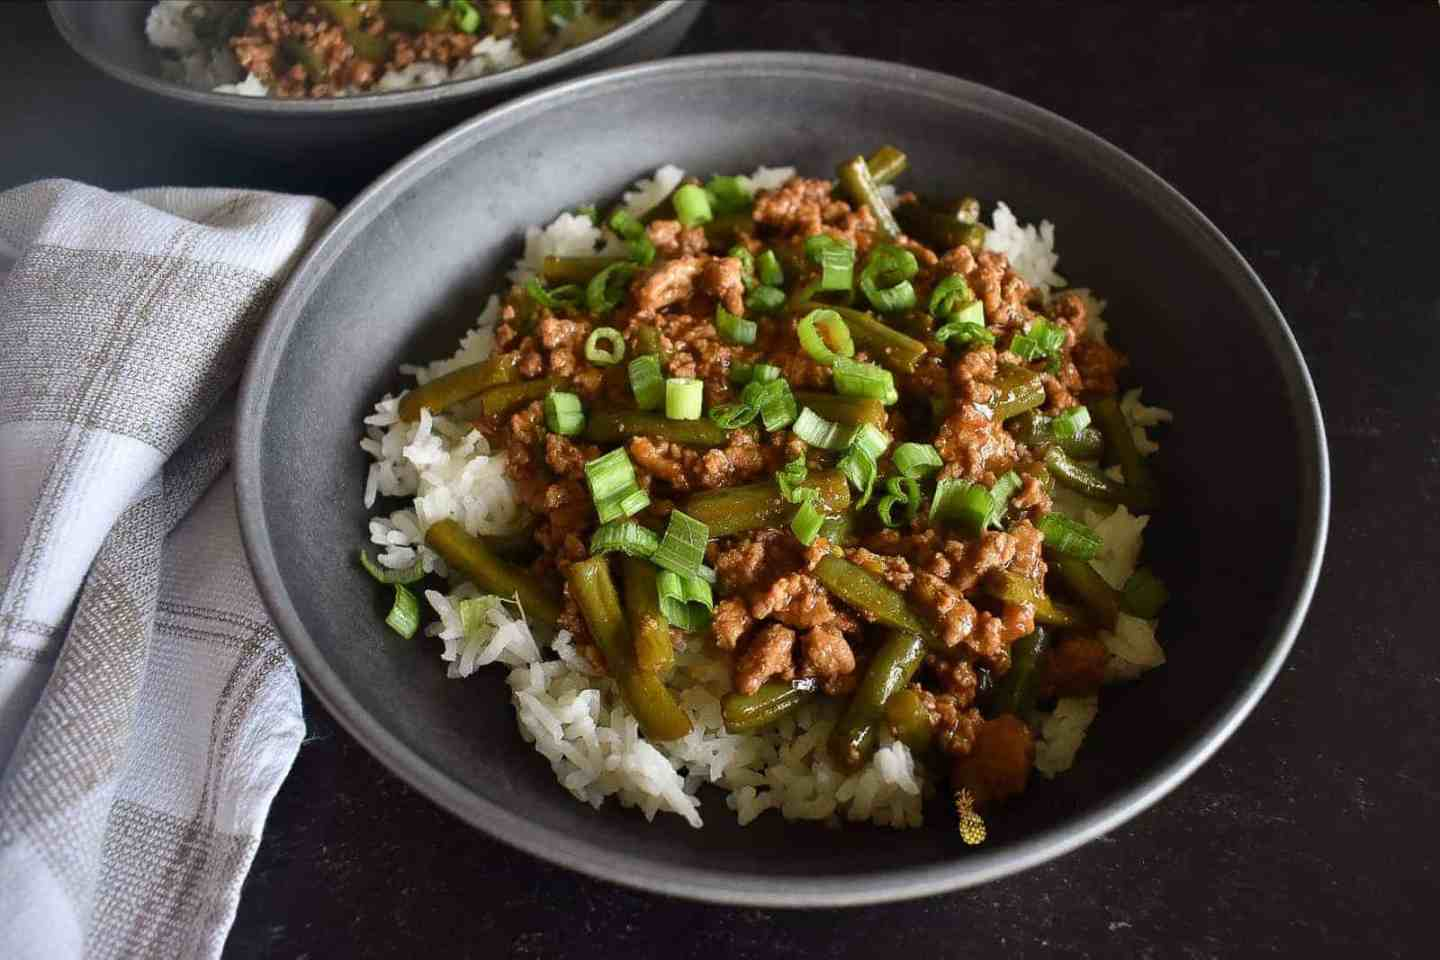 Sweet-and-Spicy-Turkey-and-Green-Bean-Stir-Fry-Easy-Recipe